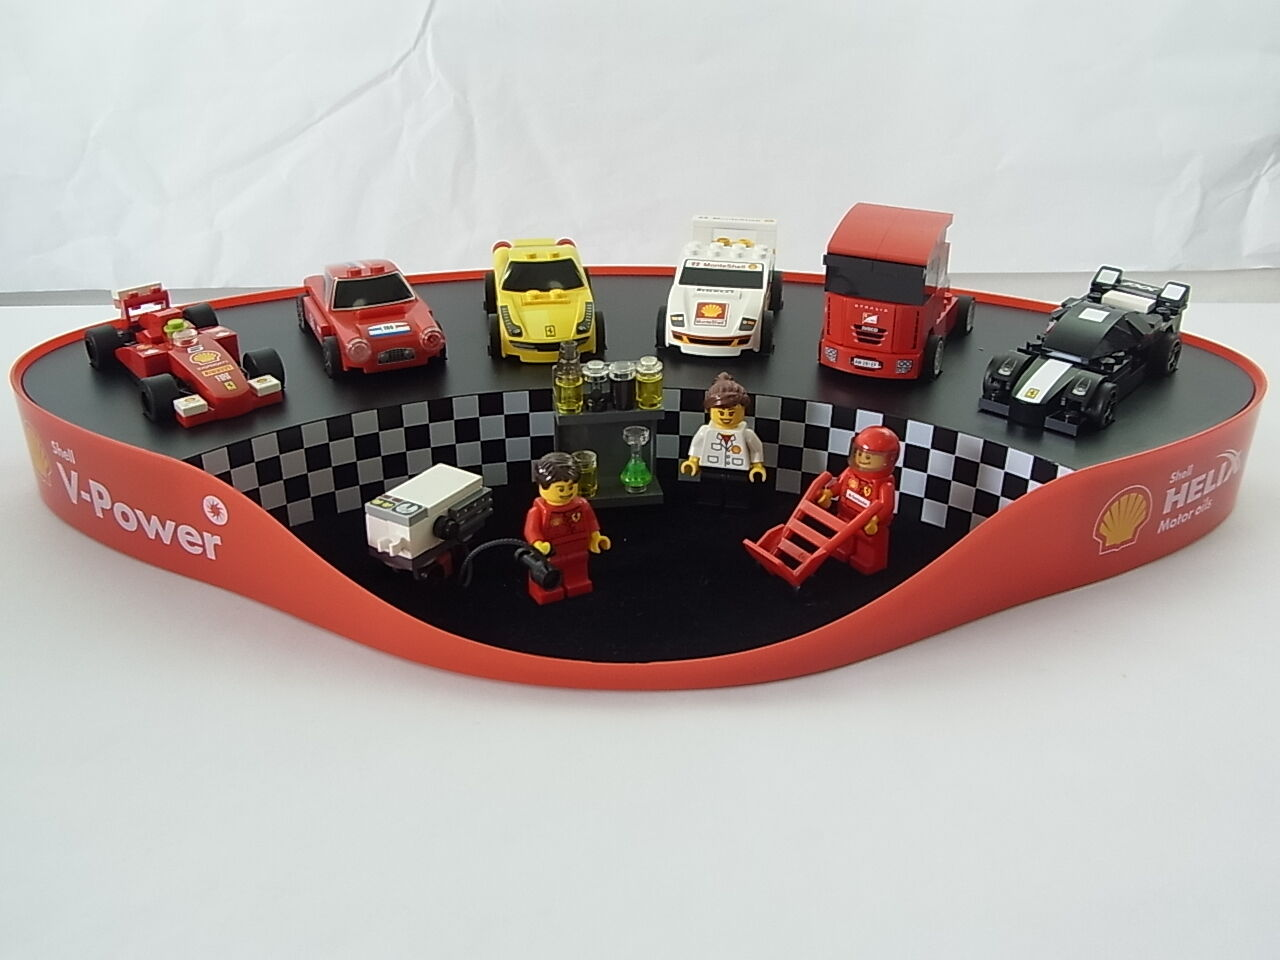 Lego Shell Ferrari Garage Display New Ferrari F1 250 GT Berlinetta 450 Italia